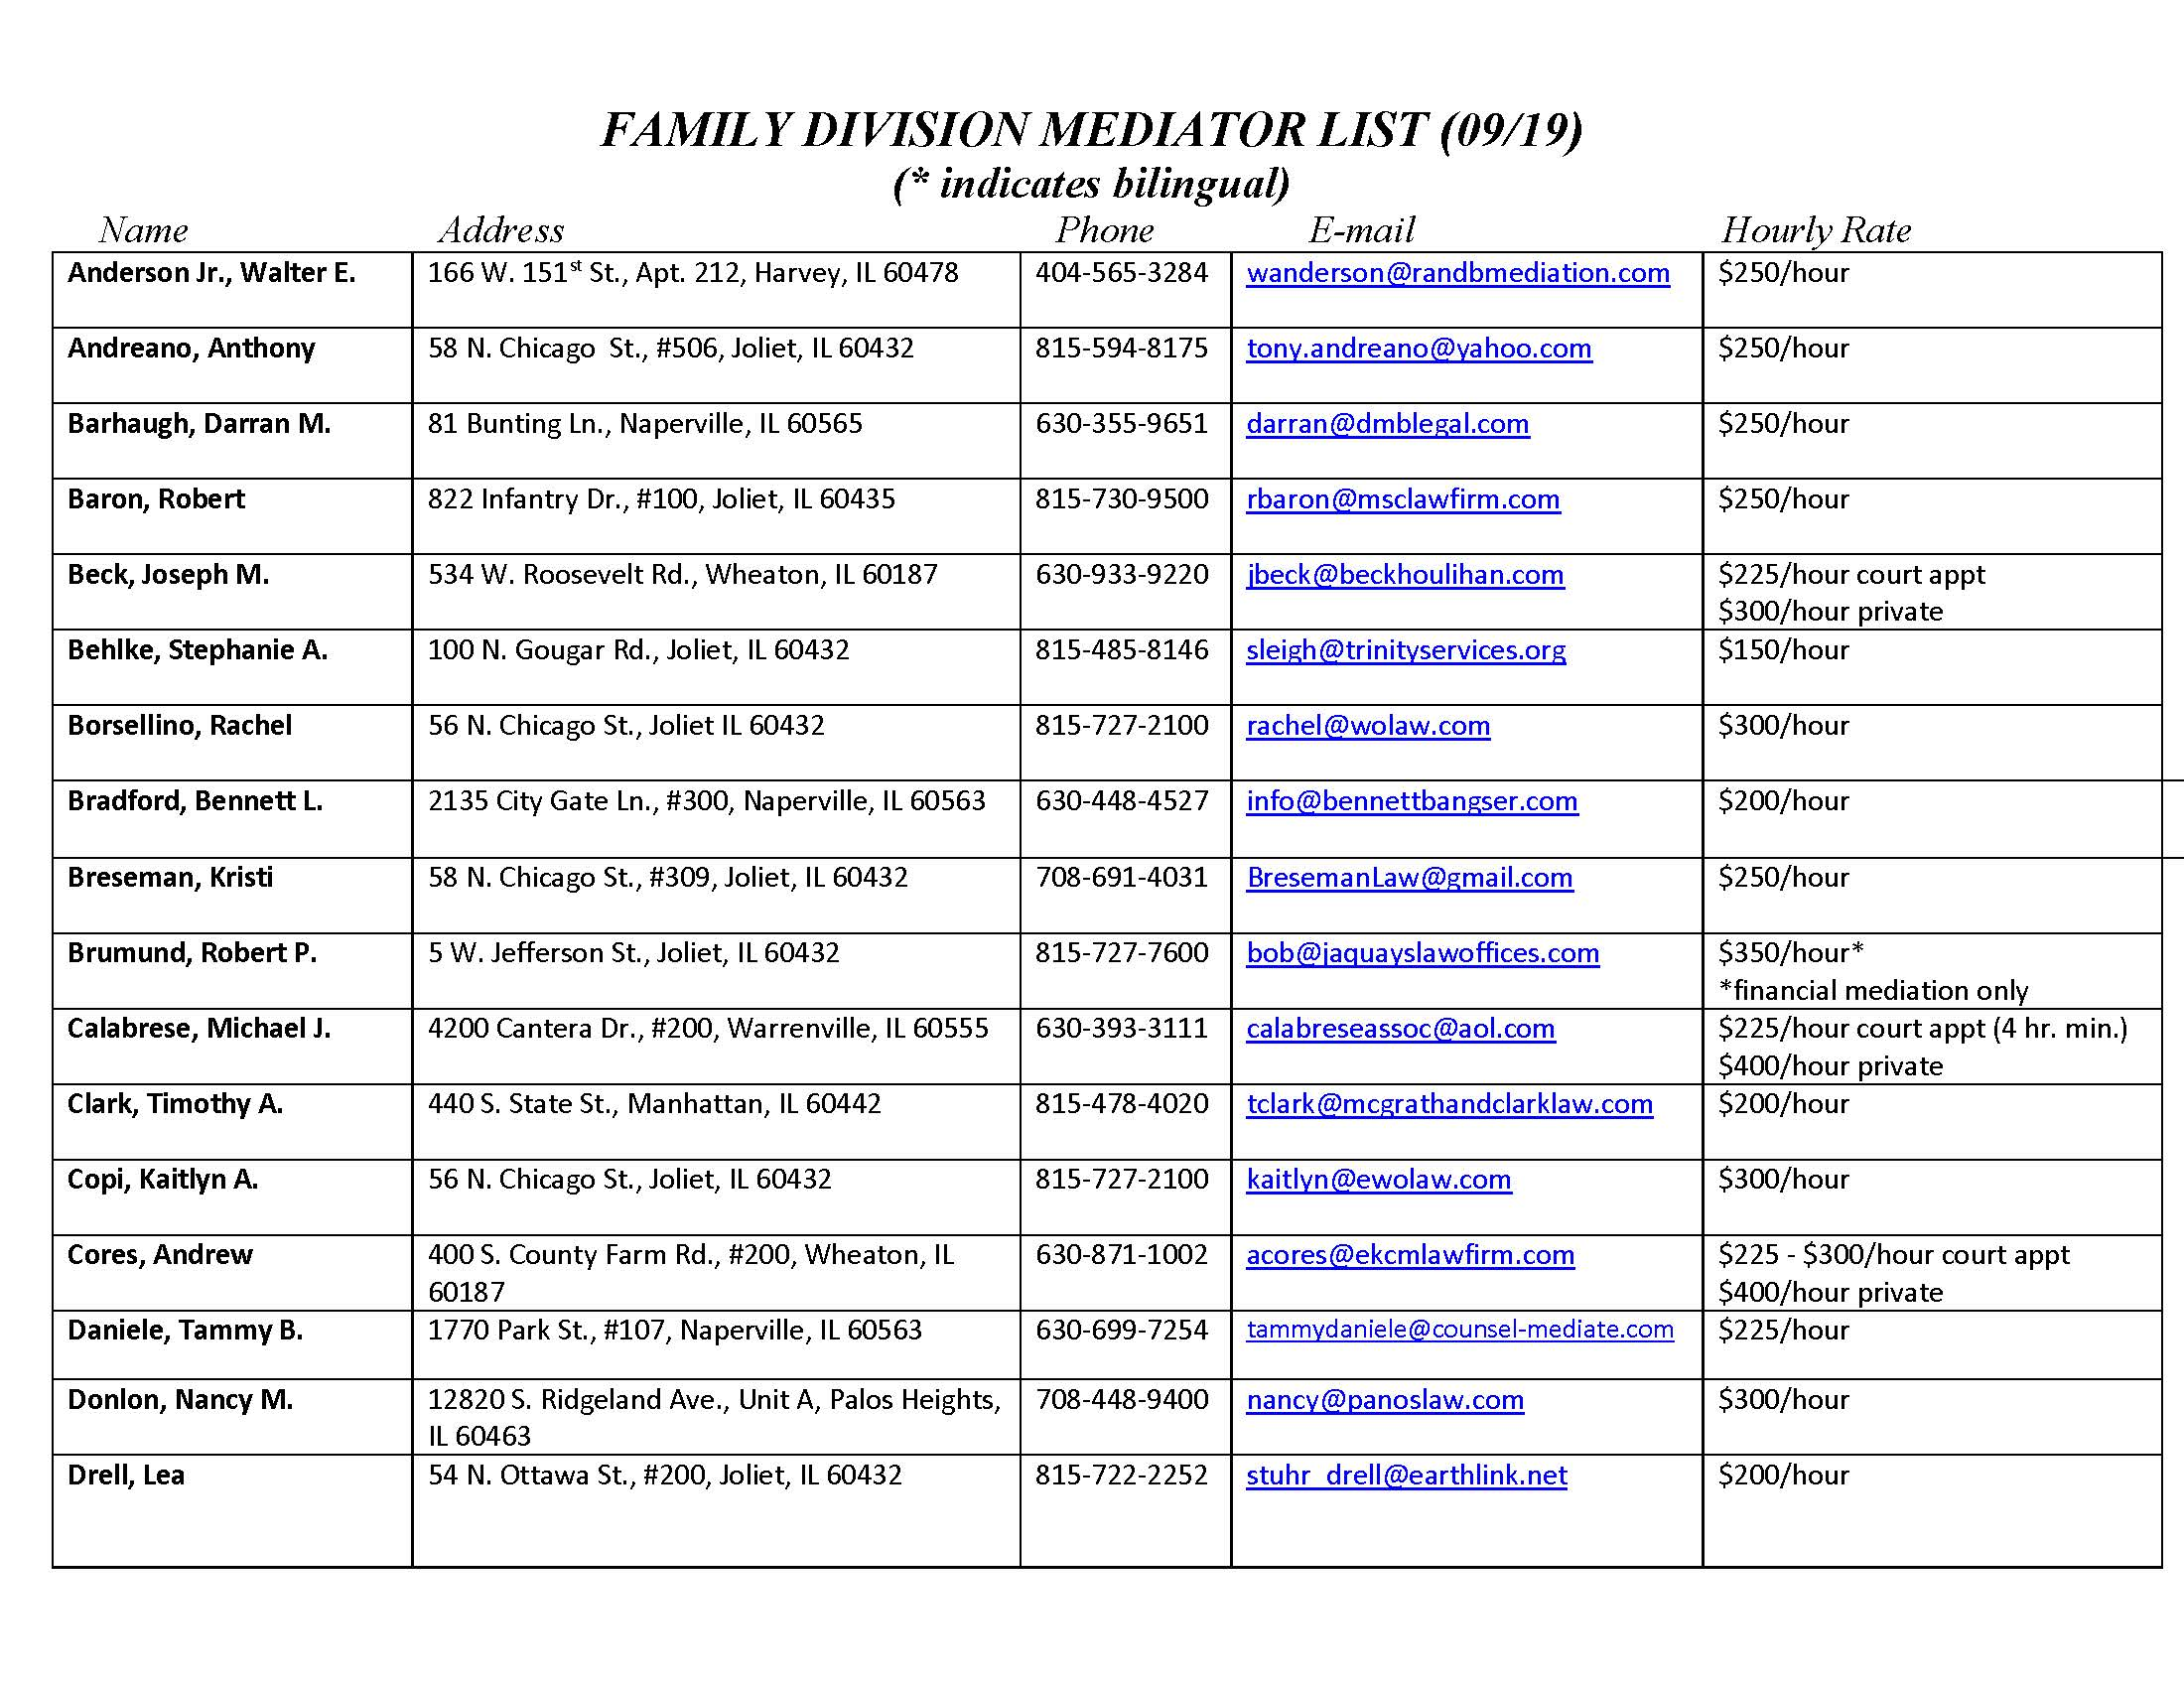 Family Mediator List Pg.1